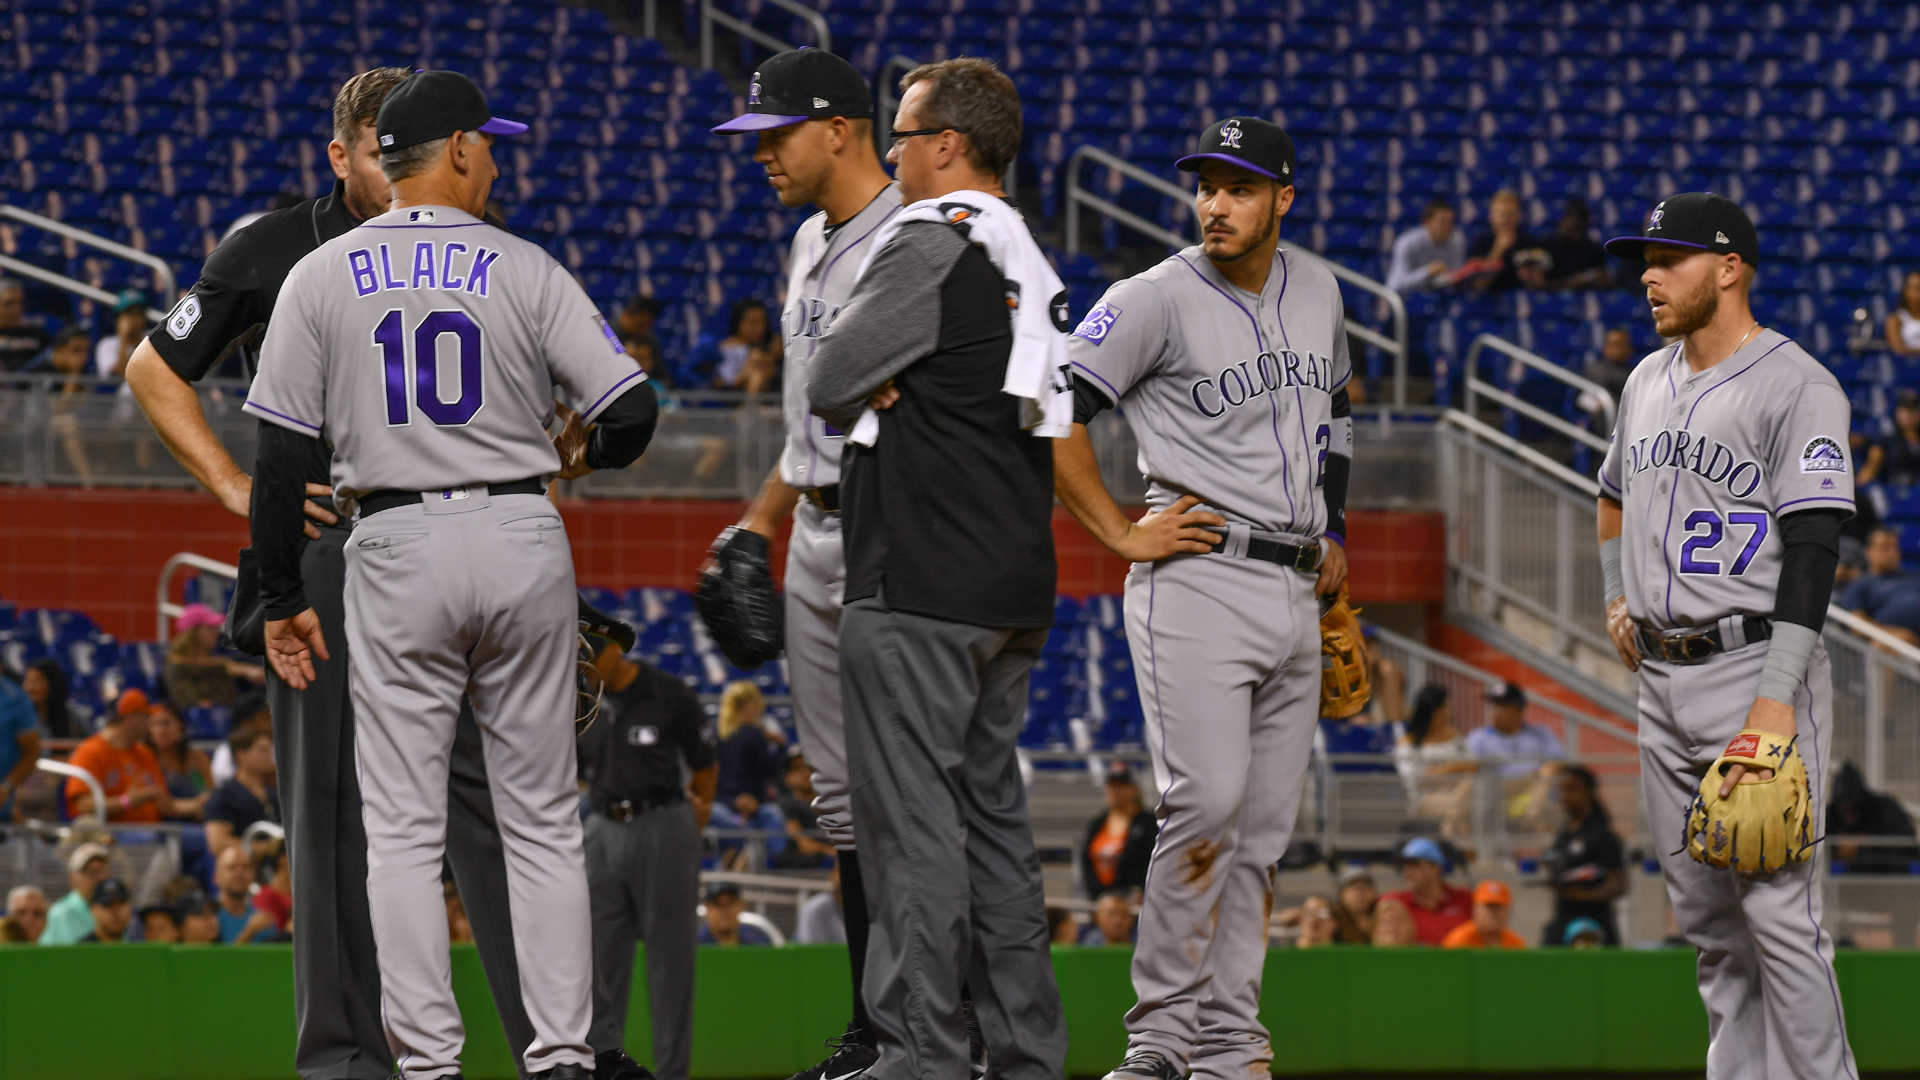 Marlins Beat Rockies 3-0 As Smith Records First Career Win